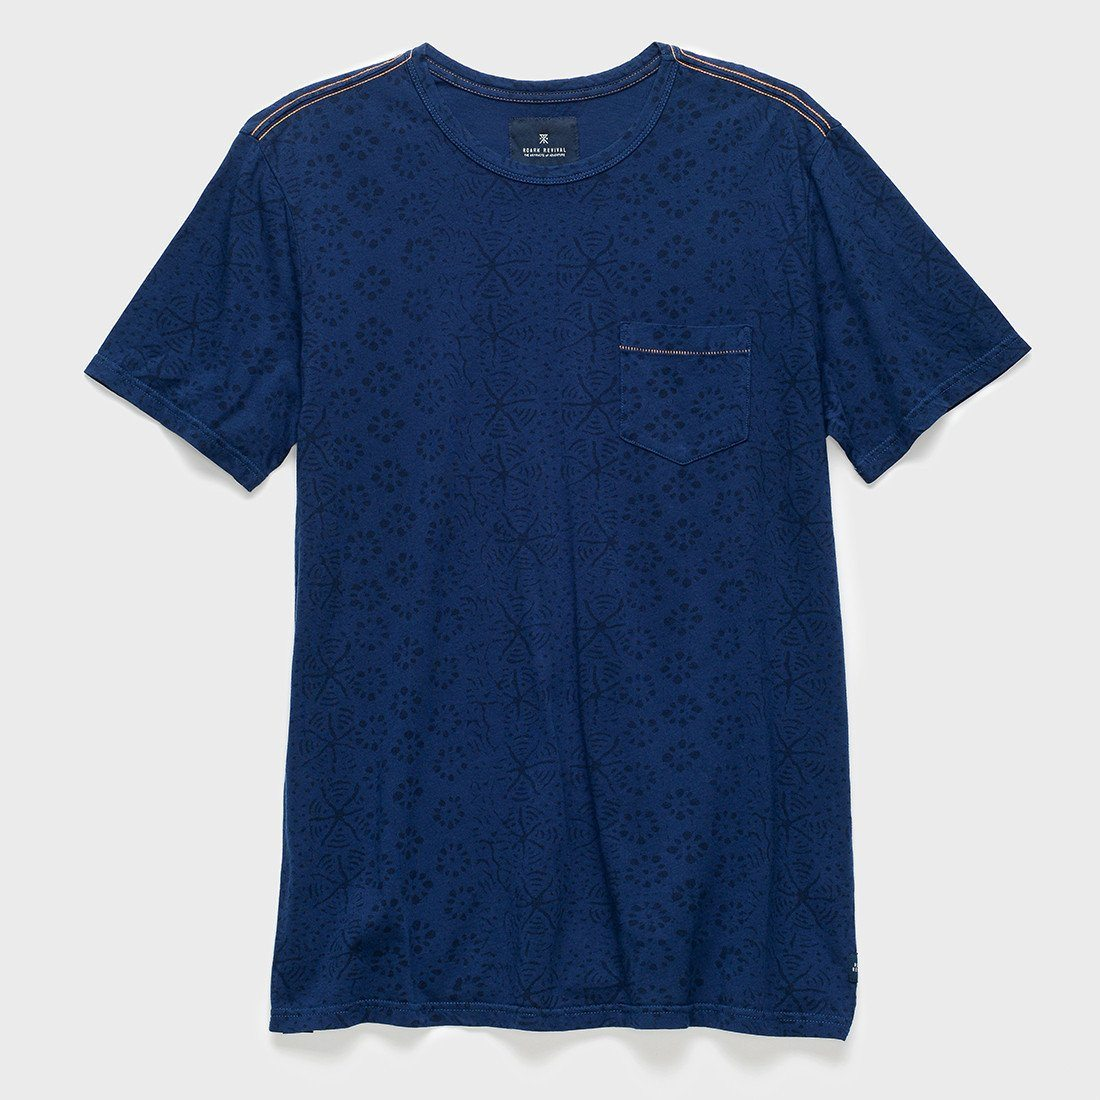 Roark Well Worn T-shirt Indigo